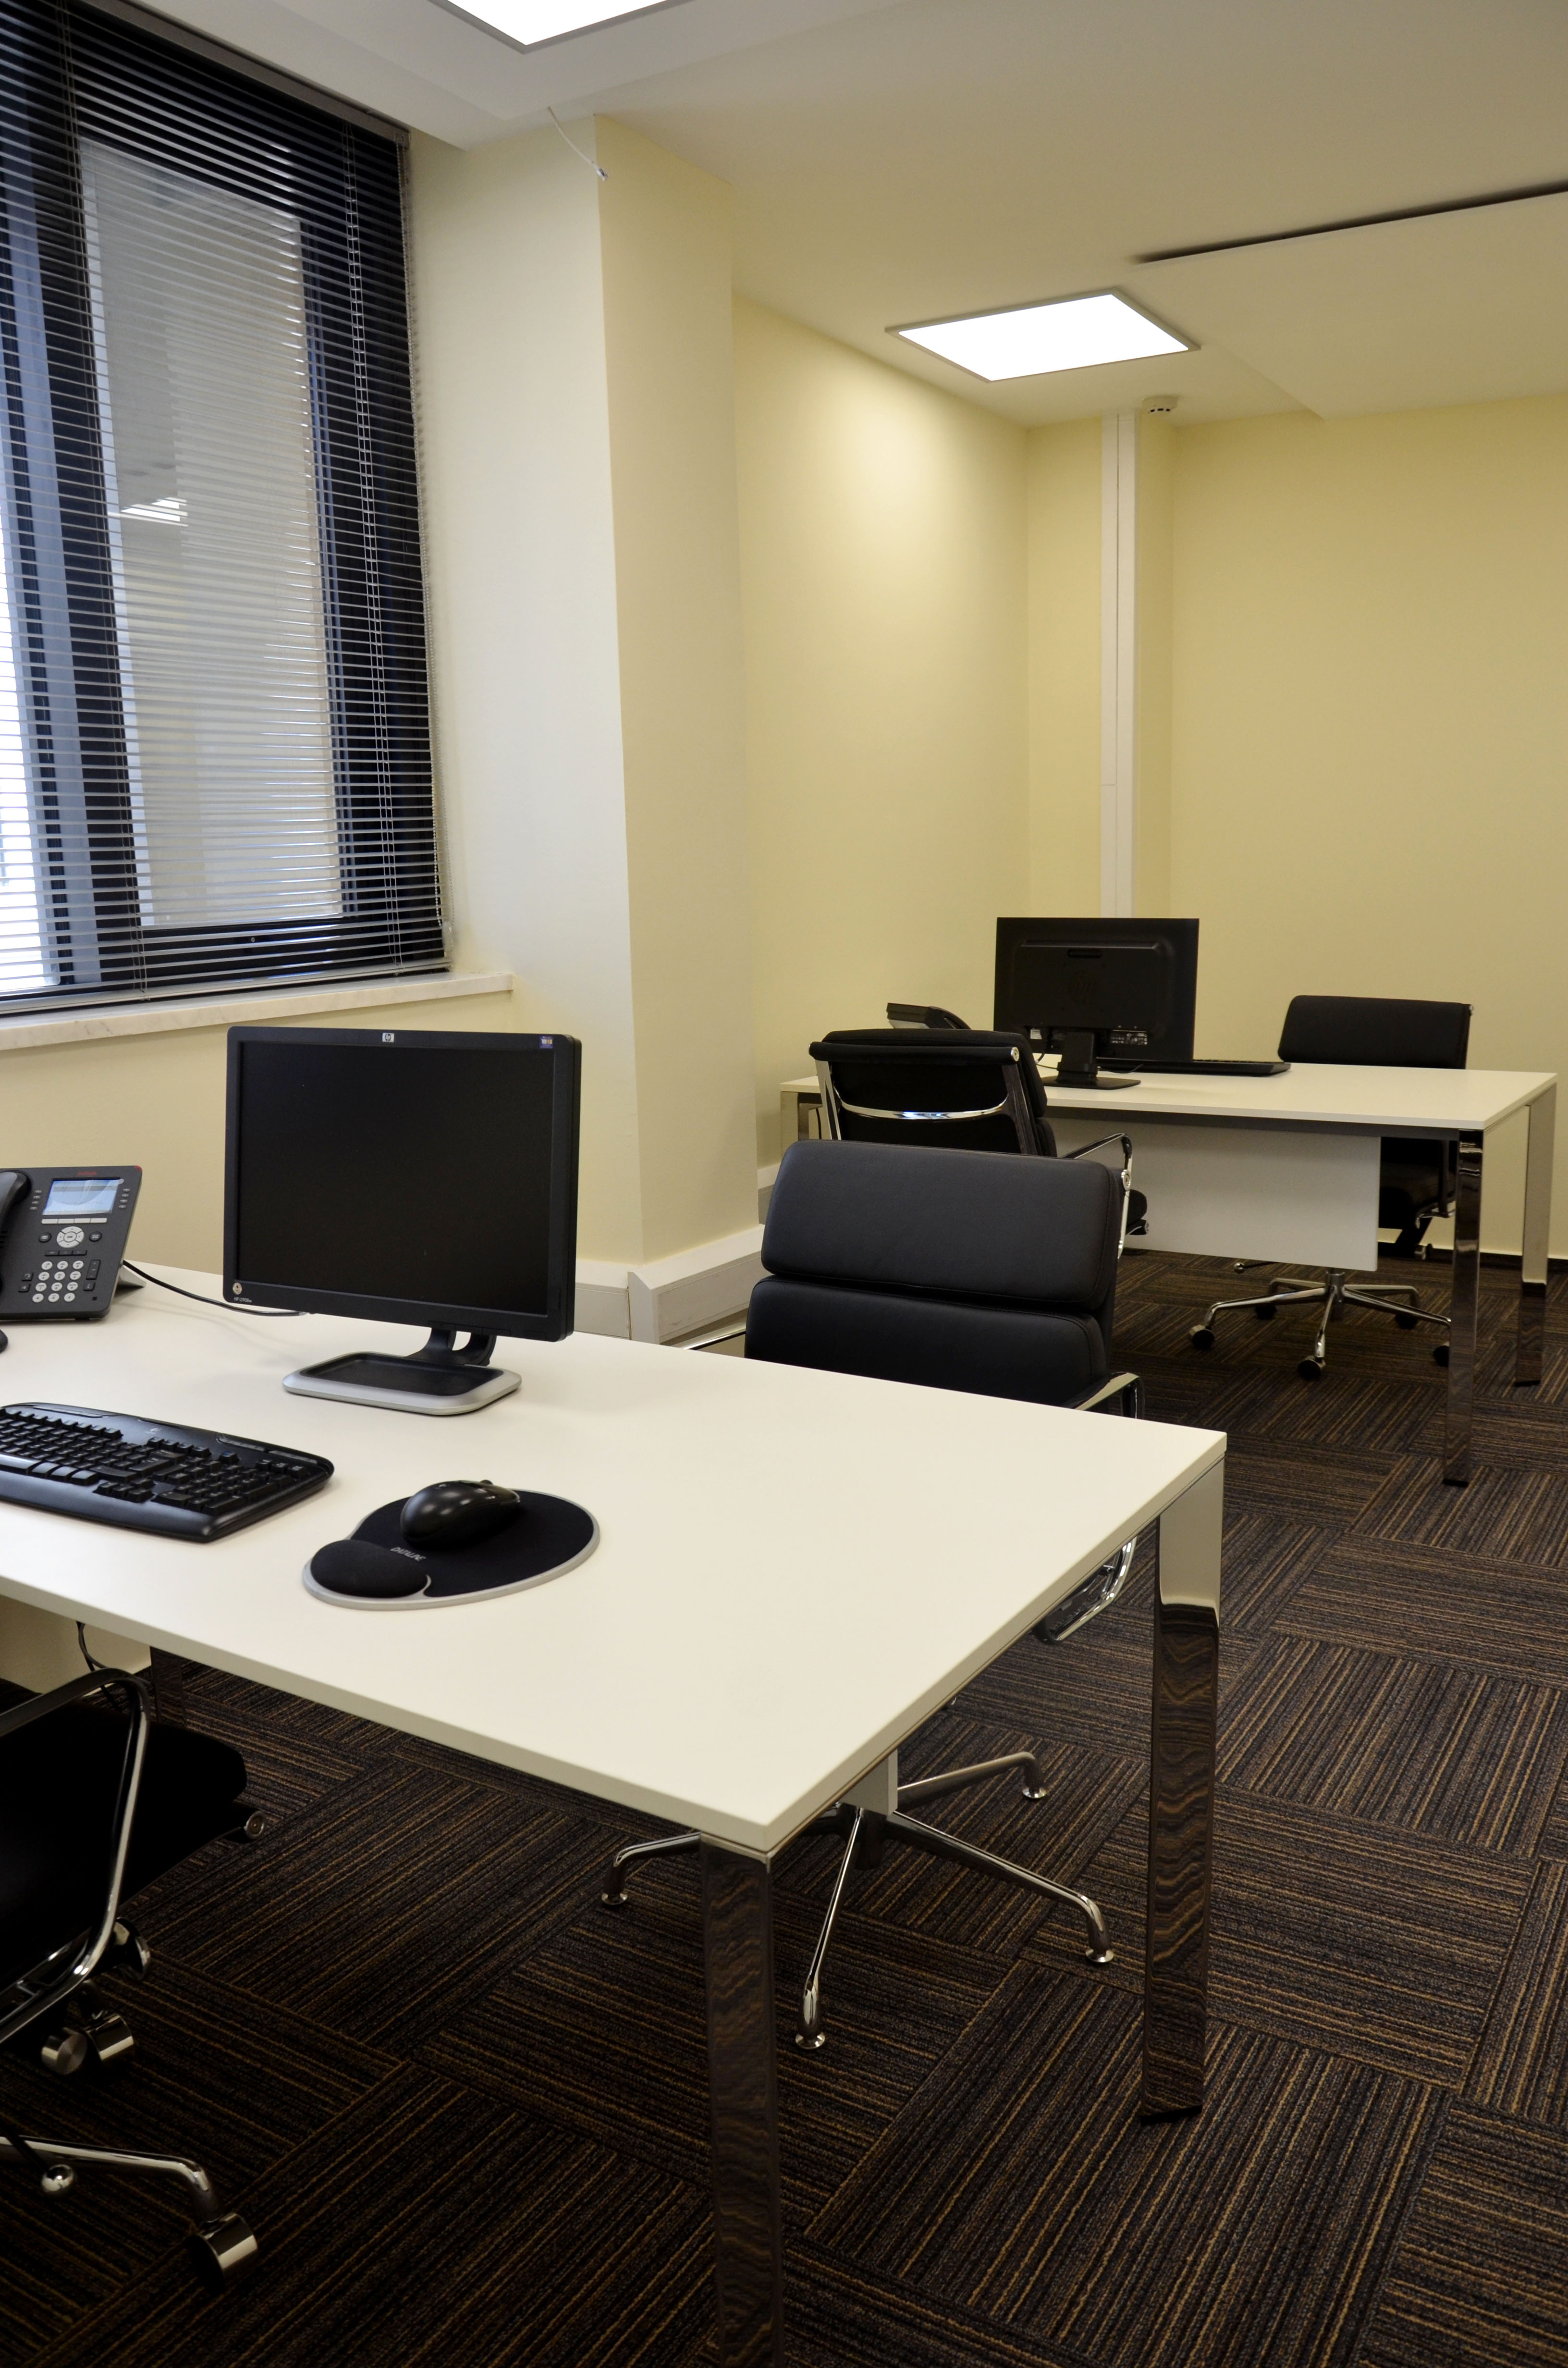 JNT Double office space sample